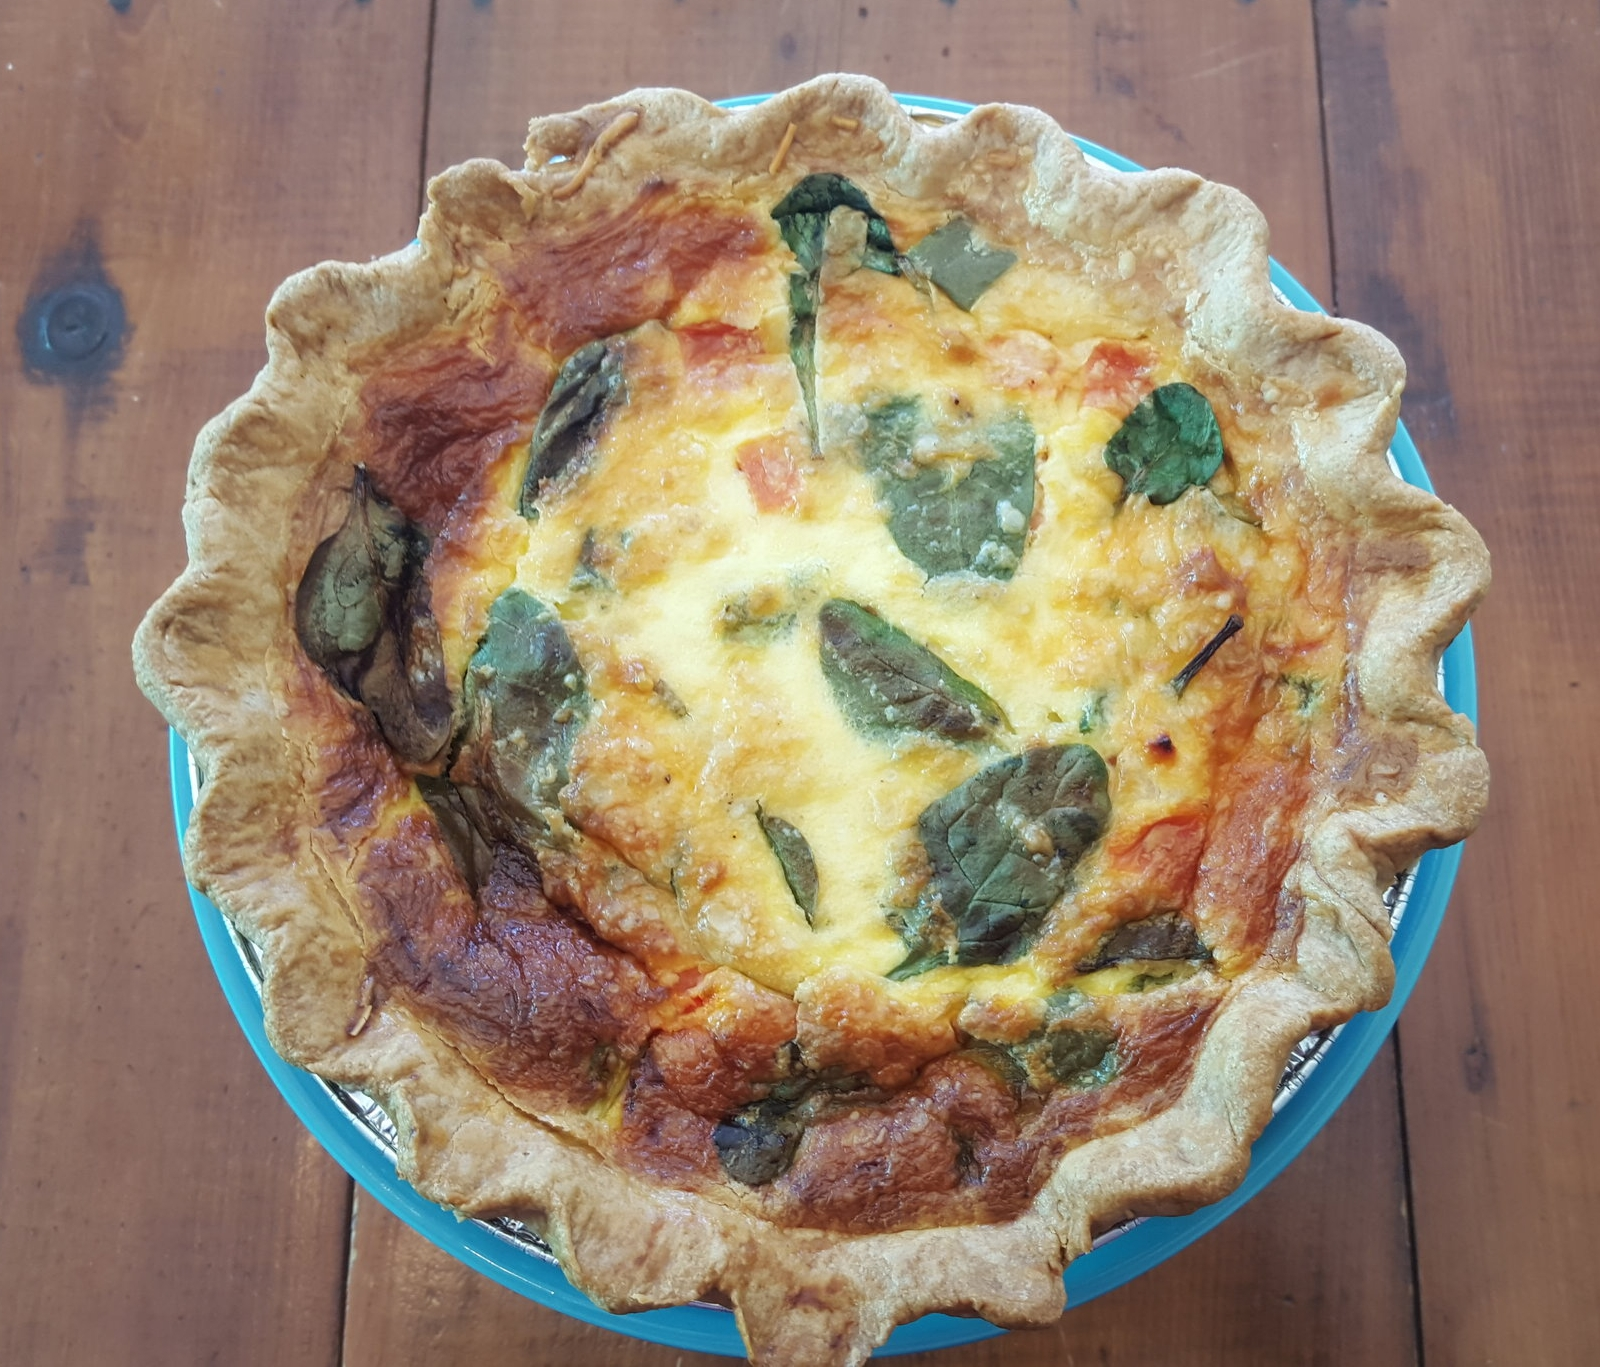 Sugar Sister Quiche - Our Quiche comes in two flavors: Cheese and Veggie. Veggie is made with Cheese, Green Peppers,Tomatoes and Spinach. Quiche can be ordered Take n Bake (comes frozen and you bake at home). Please specify your preference when ordering.